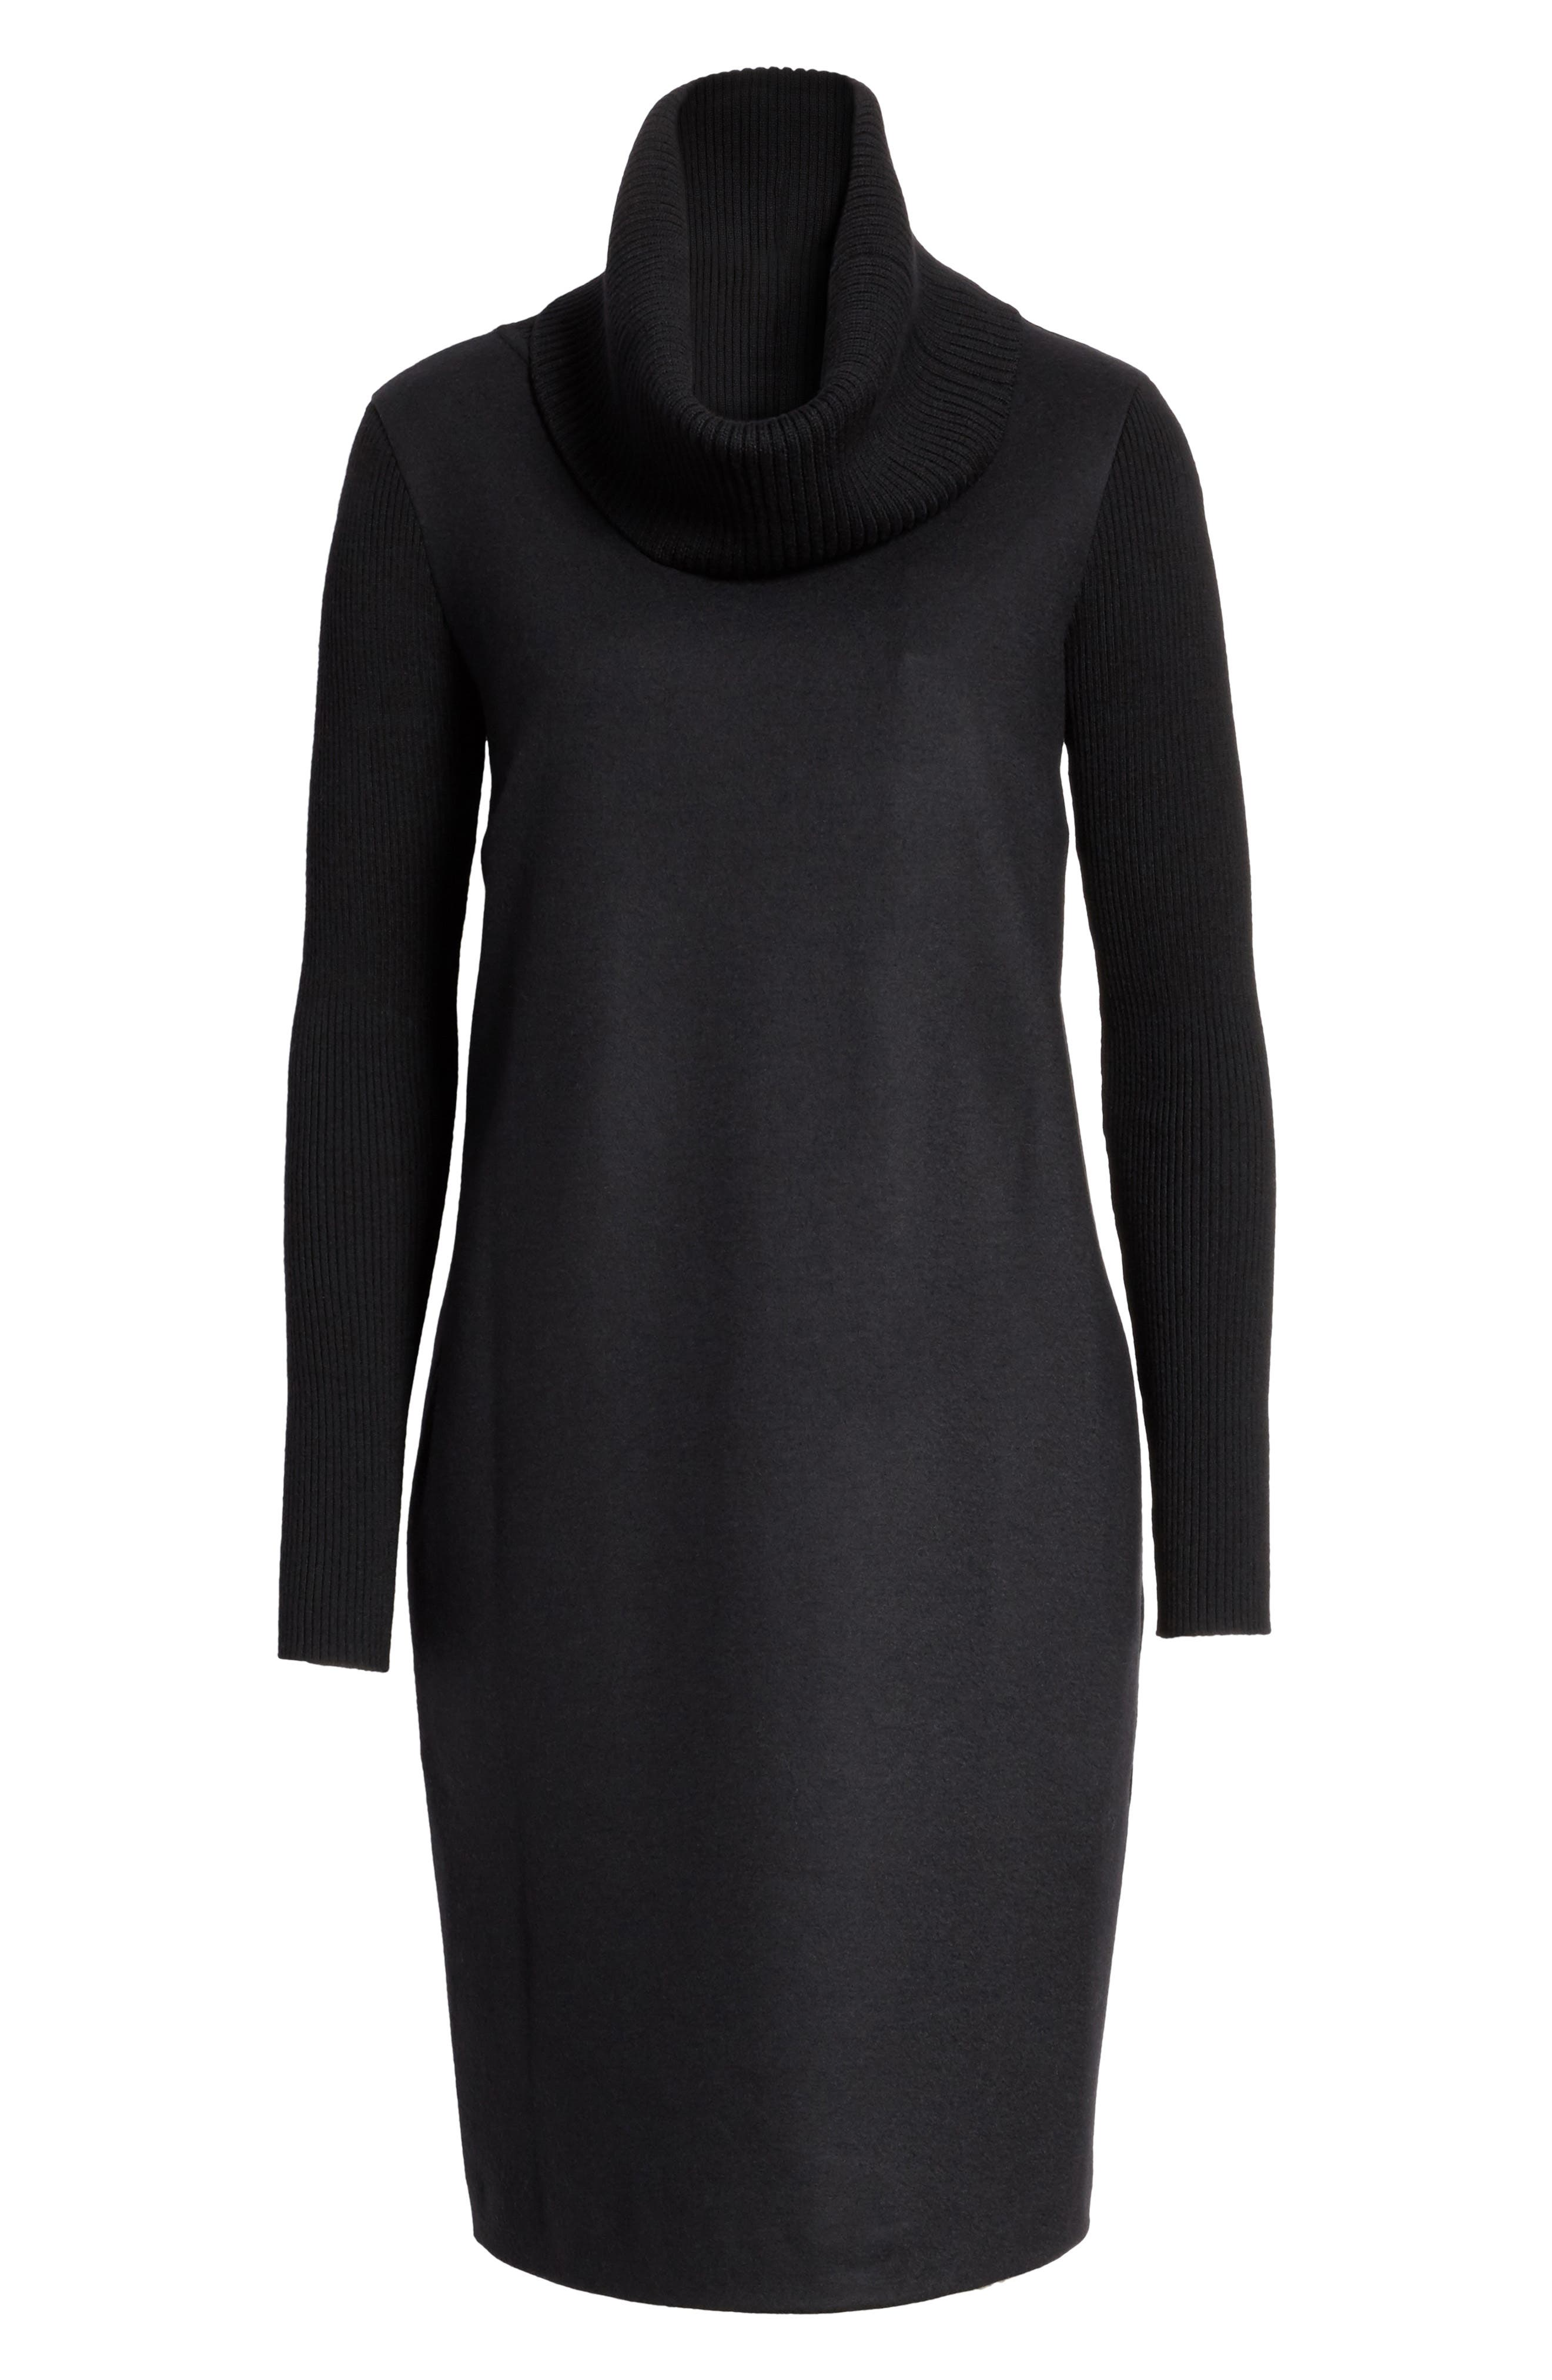 Cancan Wool Jersey Dress with Removable Knit Cowl,                             Alternate thumbnail 6, color,                             001